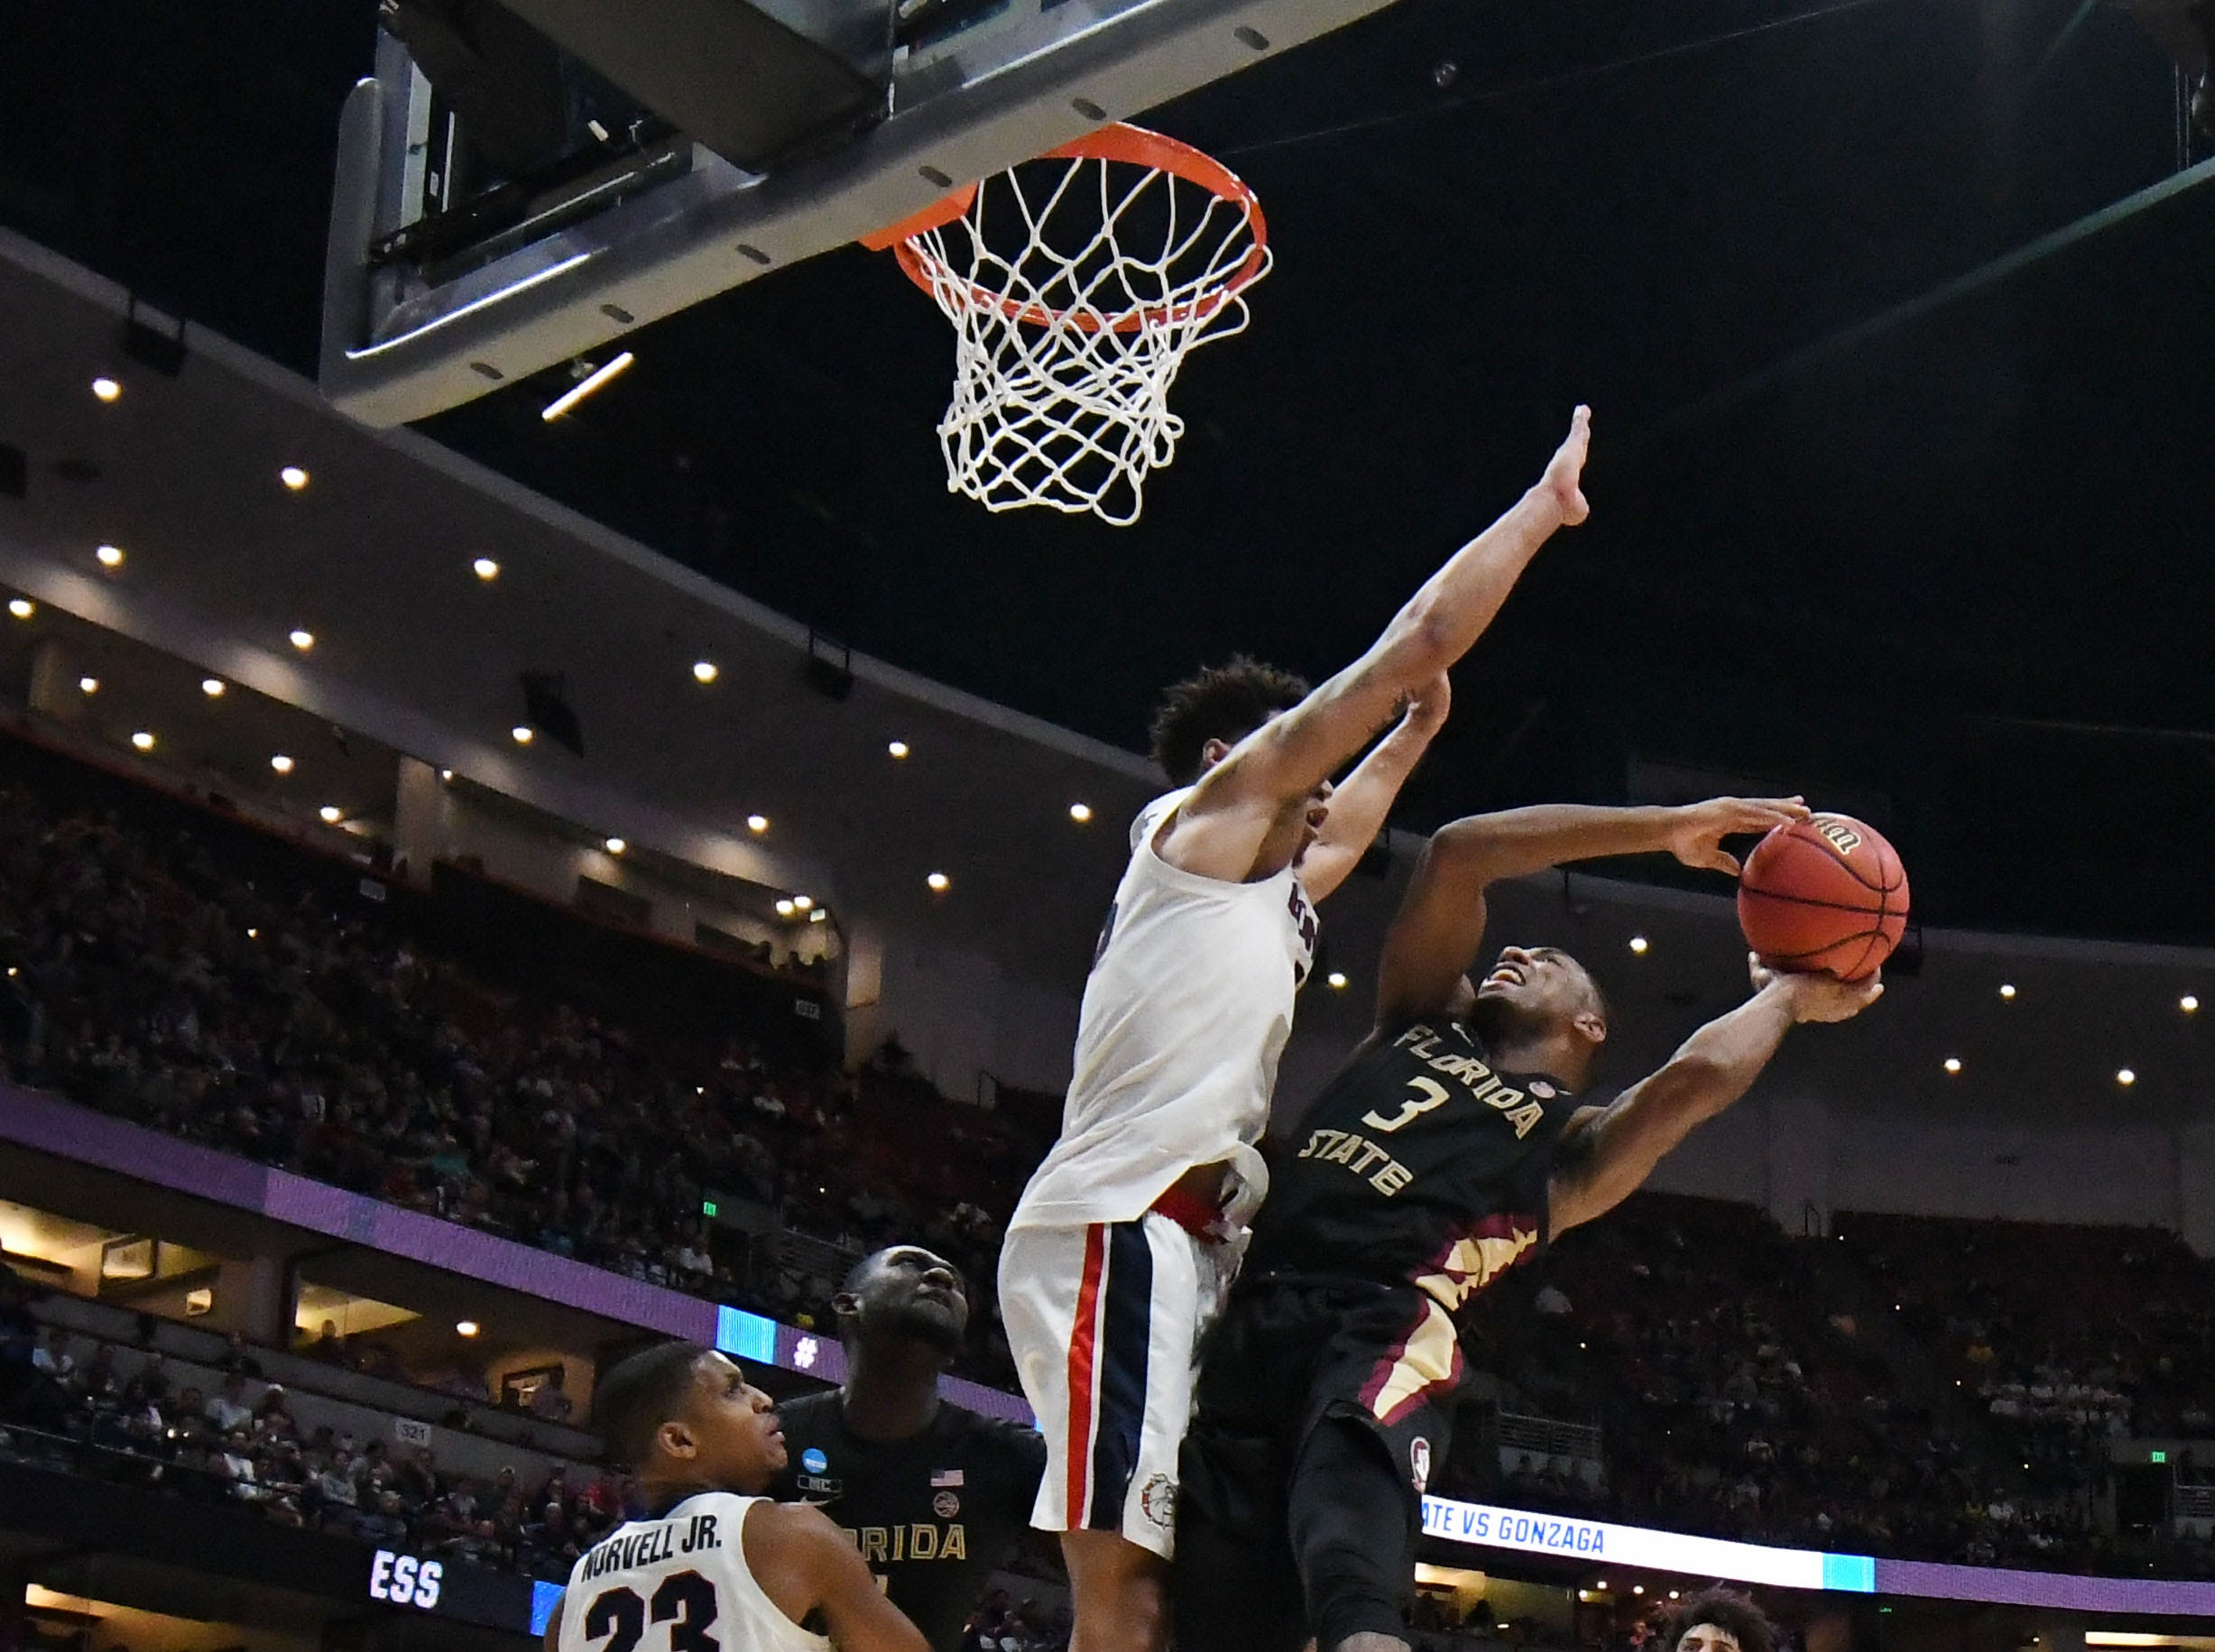 March 28, 2019; Anaheim, CA, USA; Florida State Seminoles guard Trent Forrest (3) moves to the basket against Gonzaga Bulldogs forward Brandon Clarke (15) and guard Zach Norvell Jr. (23) during the second half in the semifinals of the west regional of the 2019 NCAA Tournament at Honda Center. Mandatory Credit: Richard Mackson-USA TODAY Sports